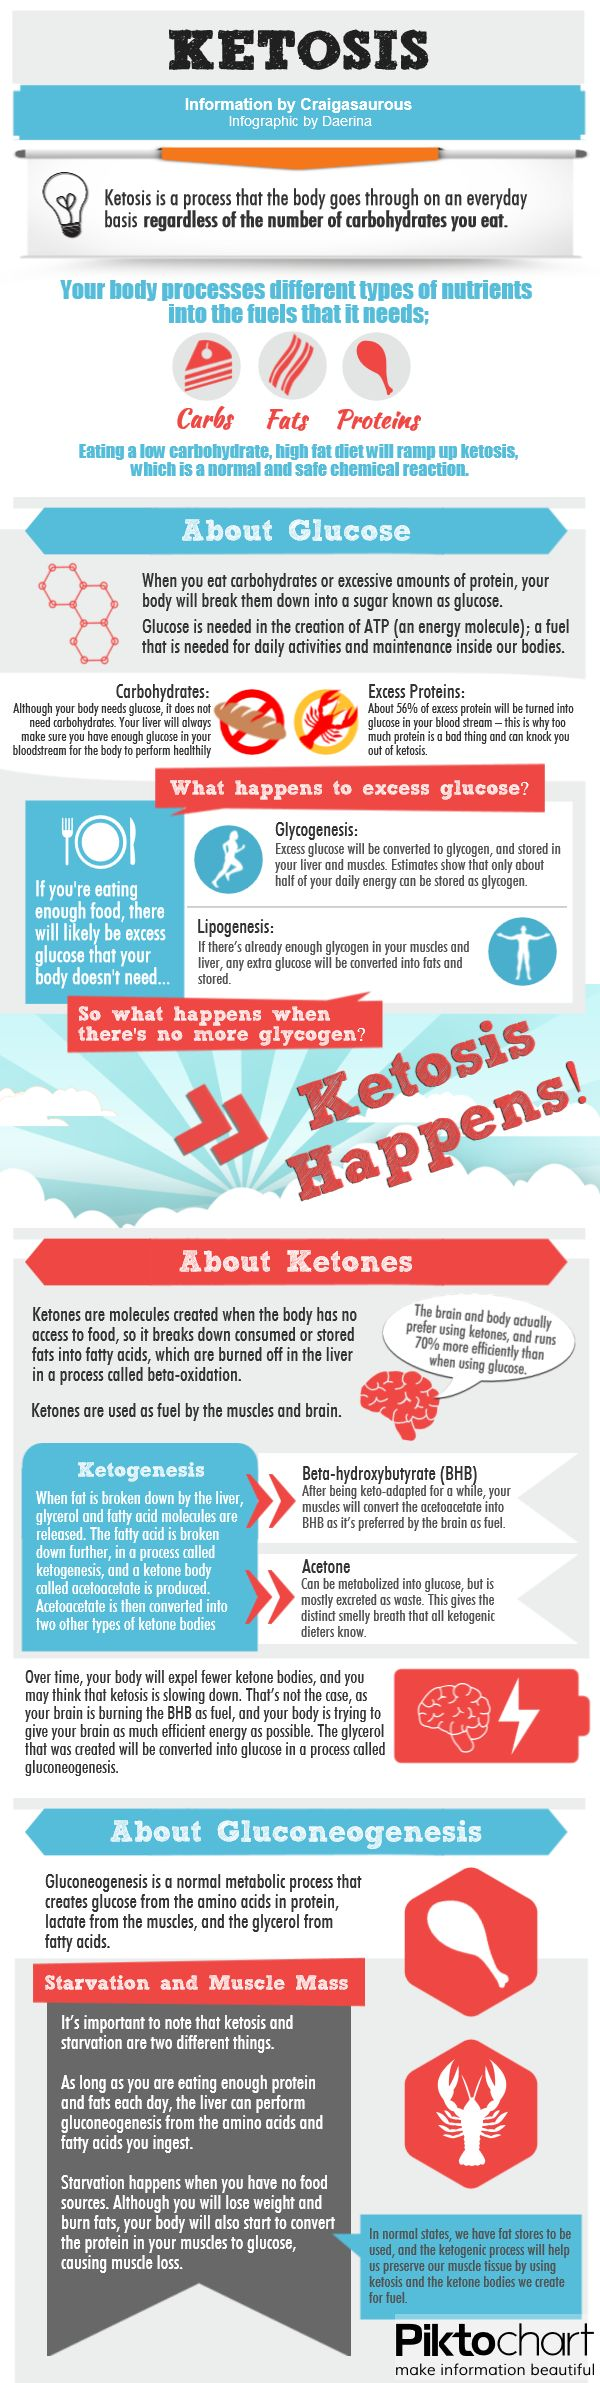 chrome hearts shop online real keto diet inforgraphic.  Really good introduction to Ketogenic diet